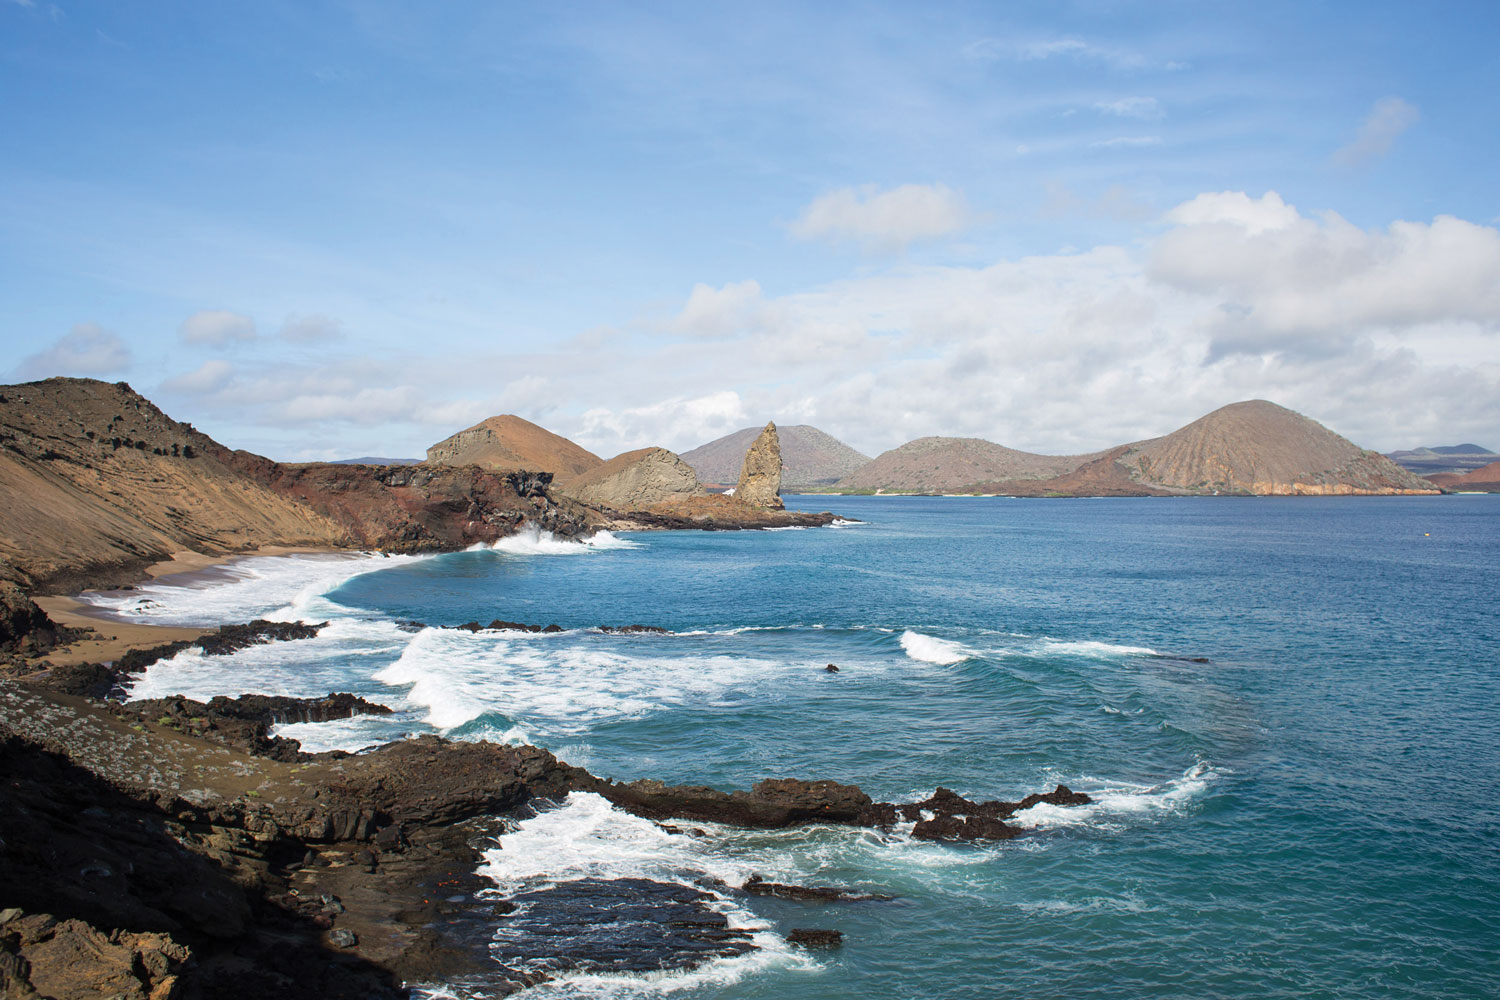 honeymoon ideas luxury cruise in the galapagos islands travel tips reviews and suggestions cruises